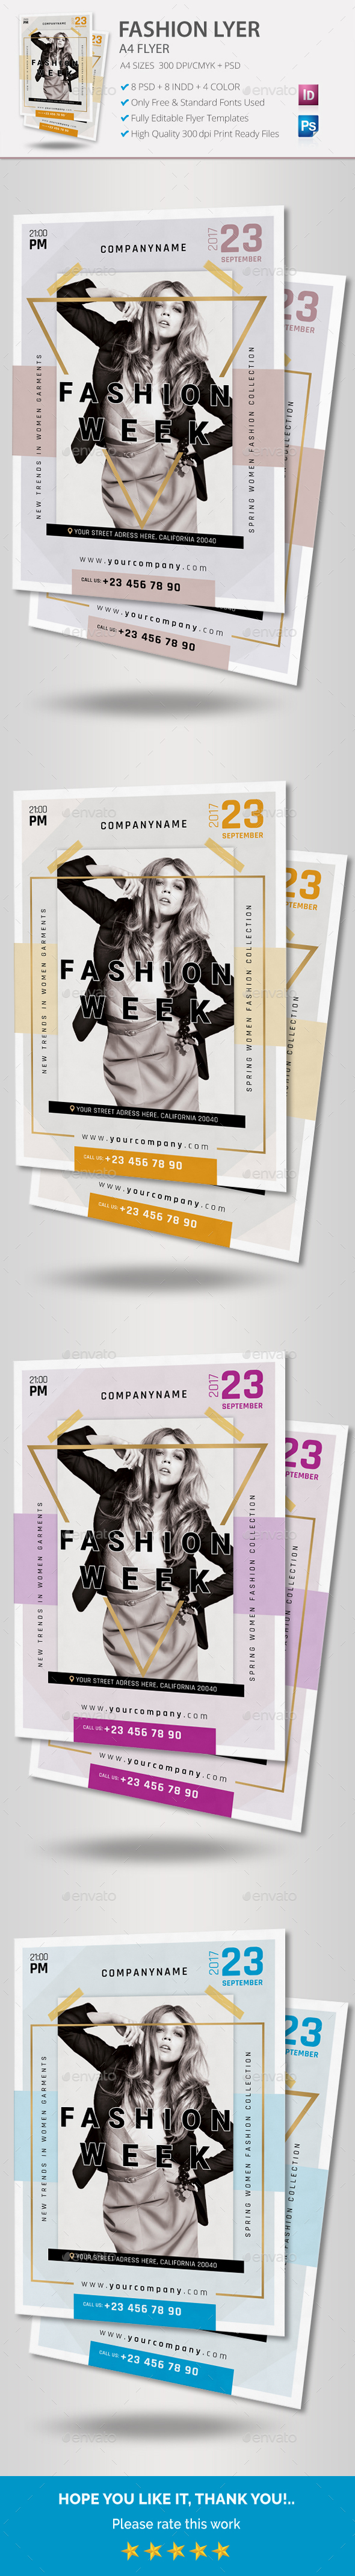 Fashion Flyer - Flyers Print Templates